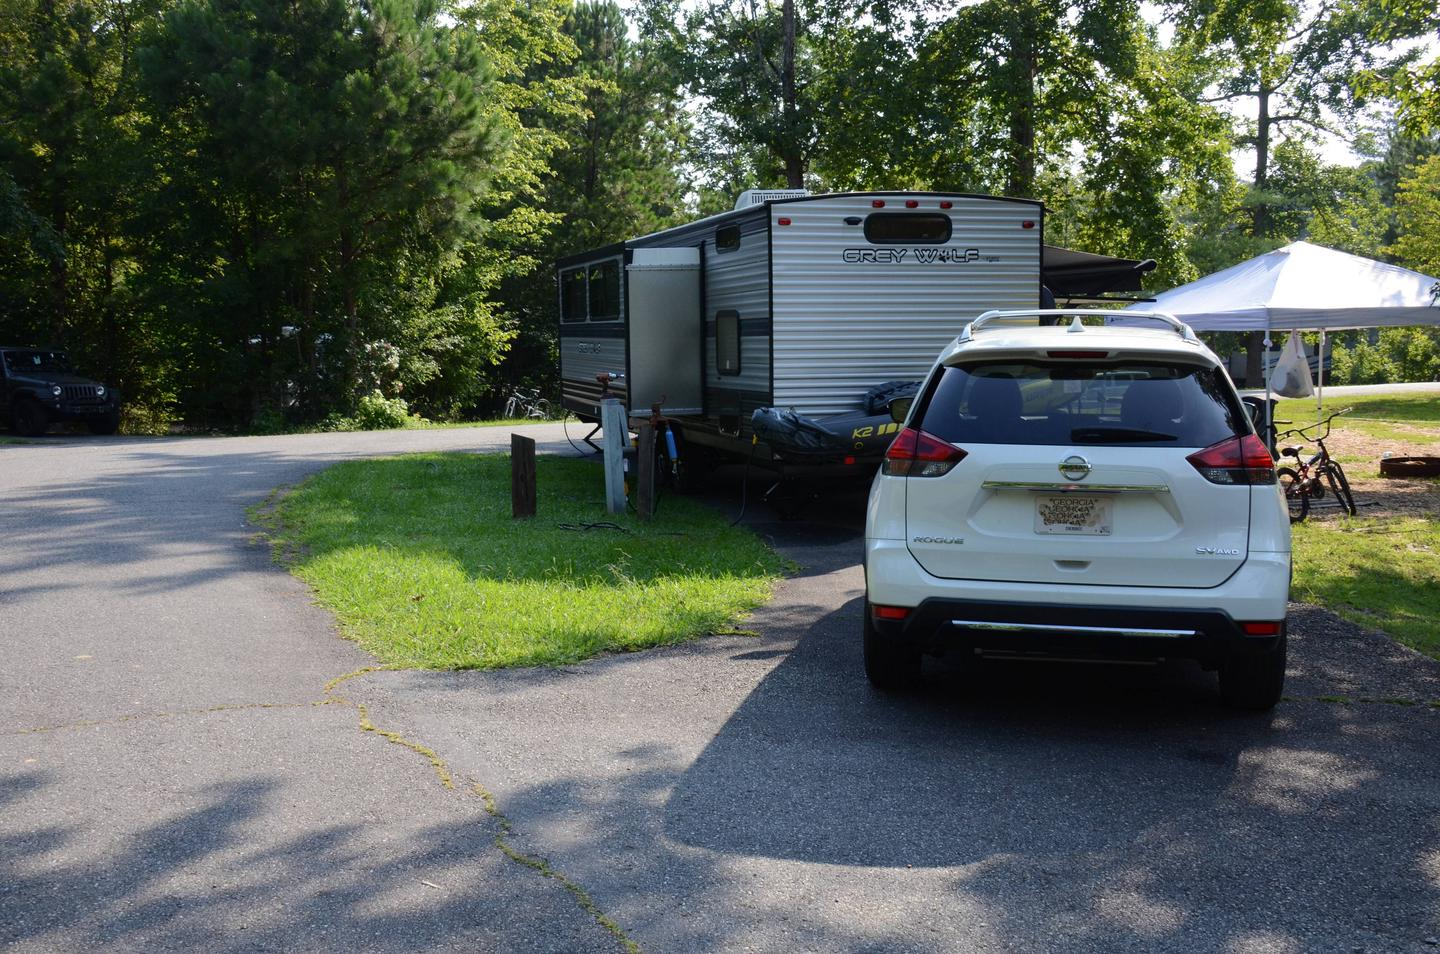 Pull-thru entrance, utilities clearance.Payne Campground, campsite 28.